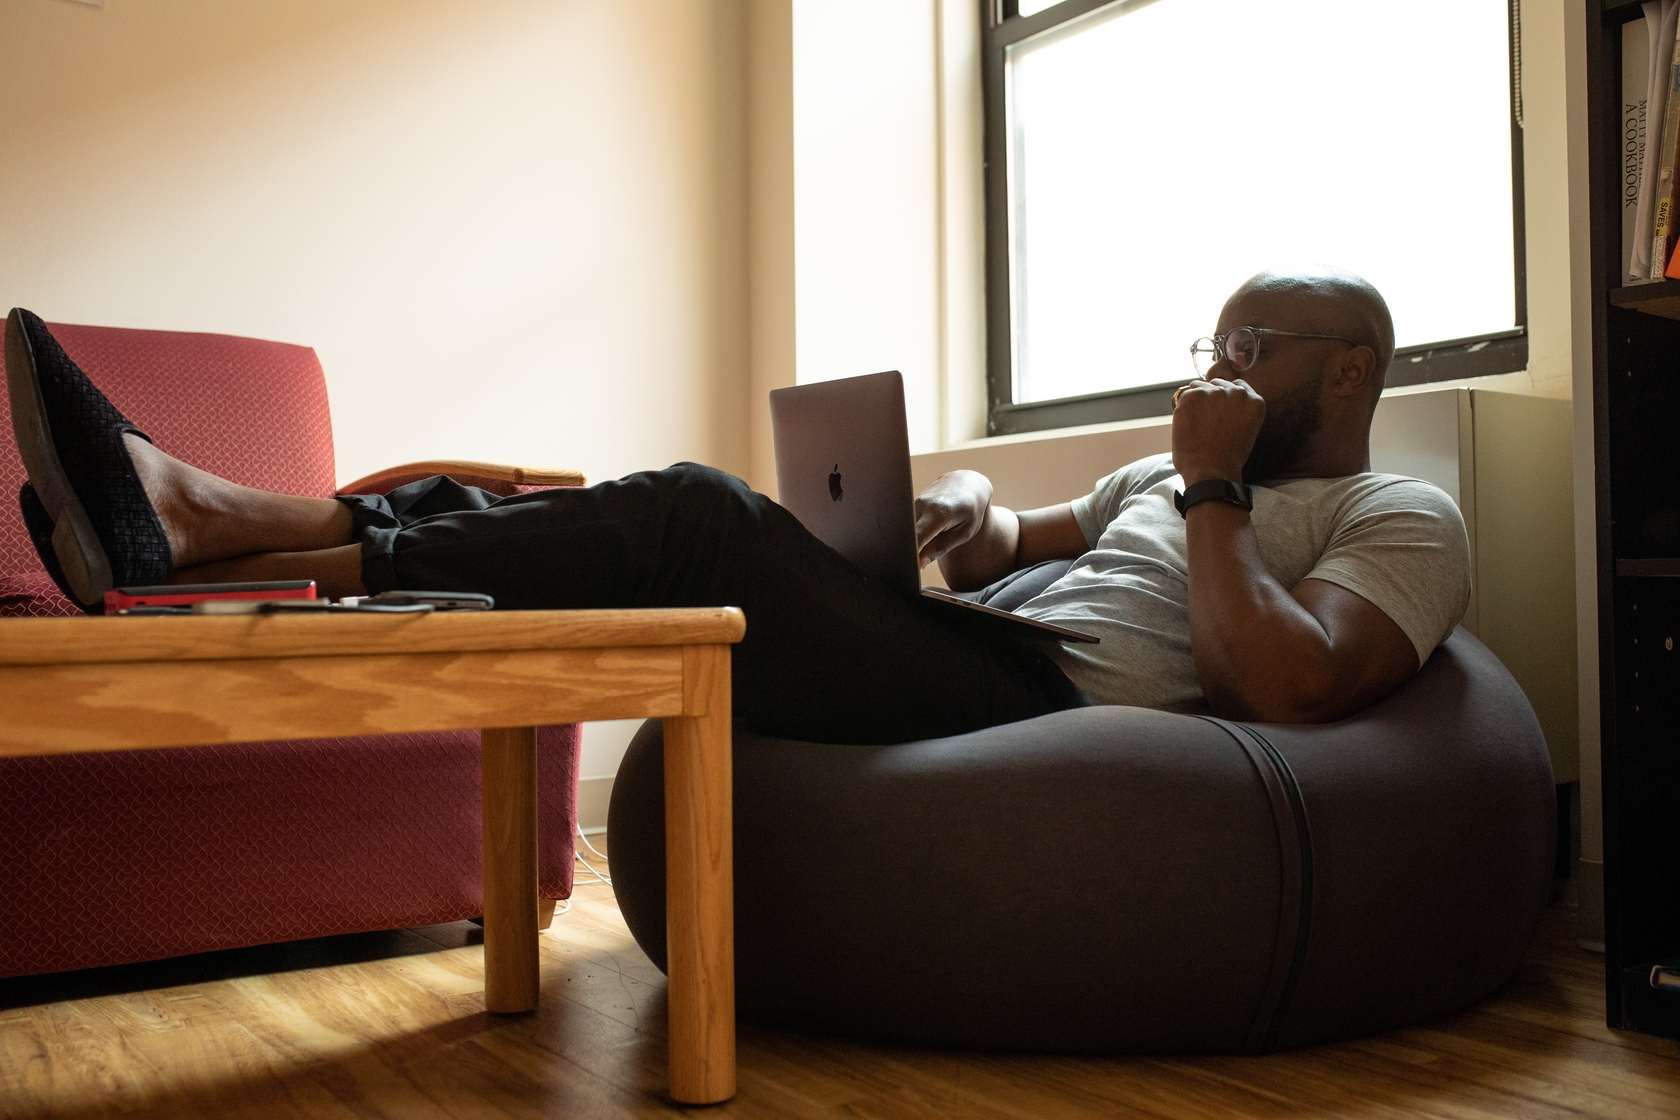 image of a man working on a laptop on a bean bag chair